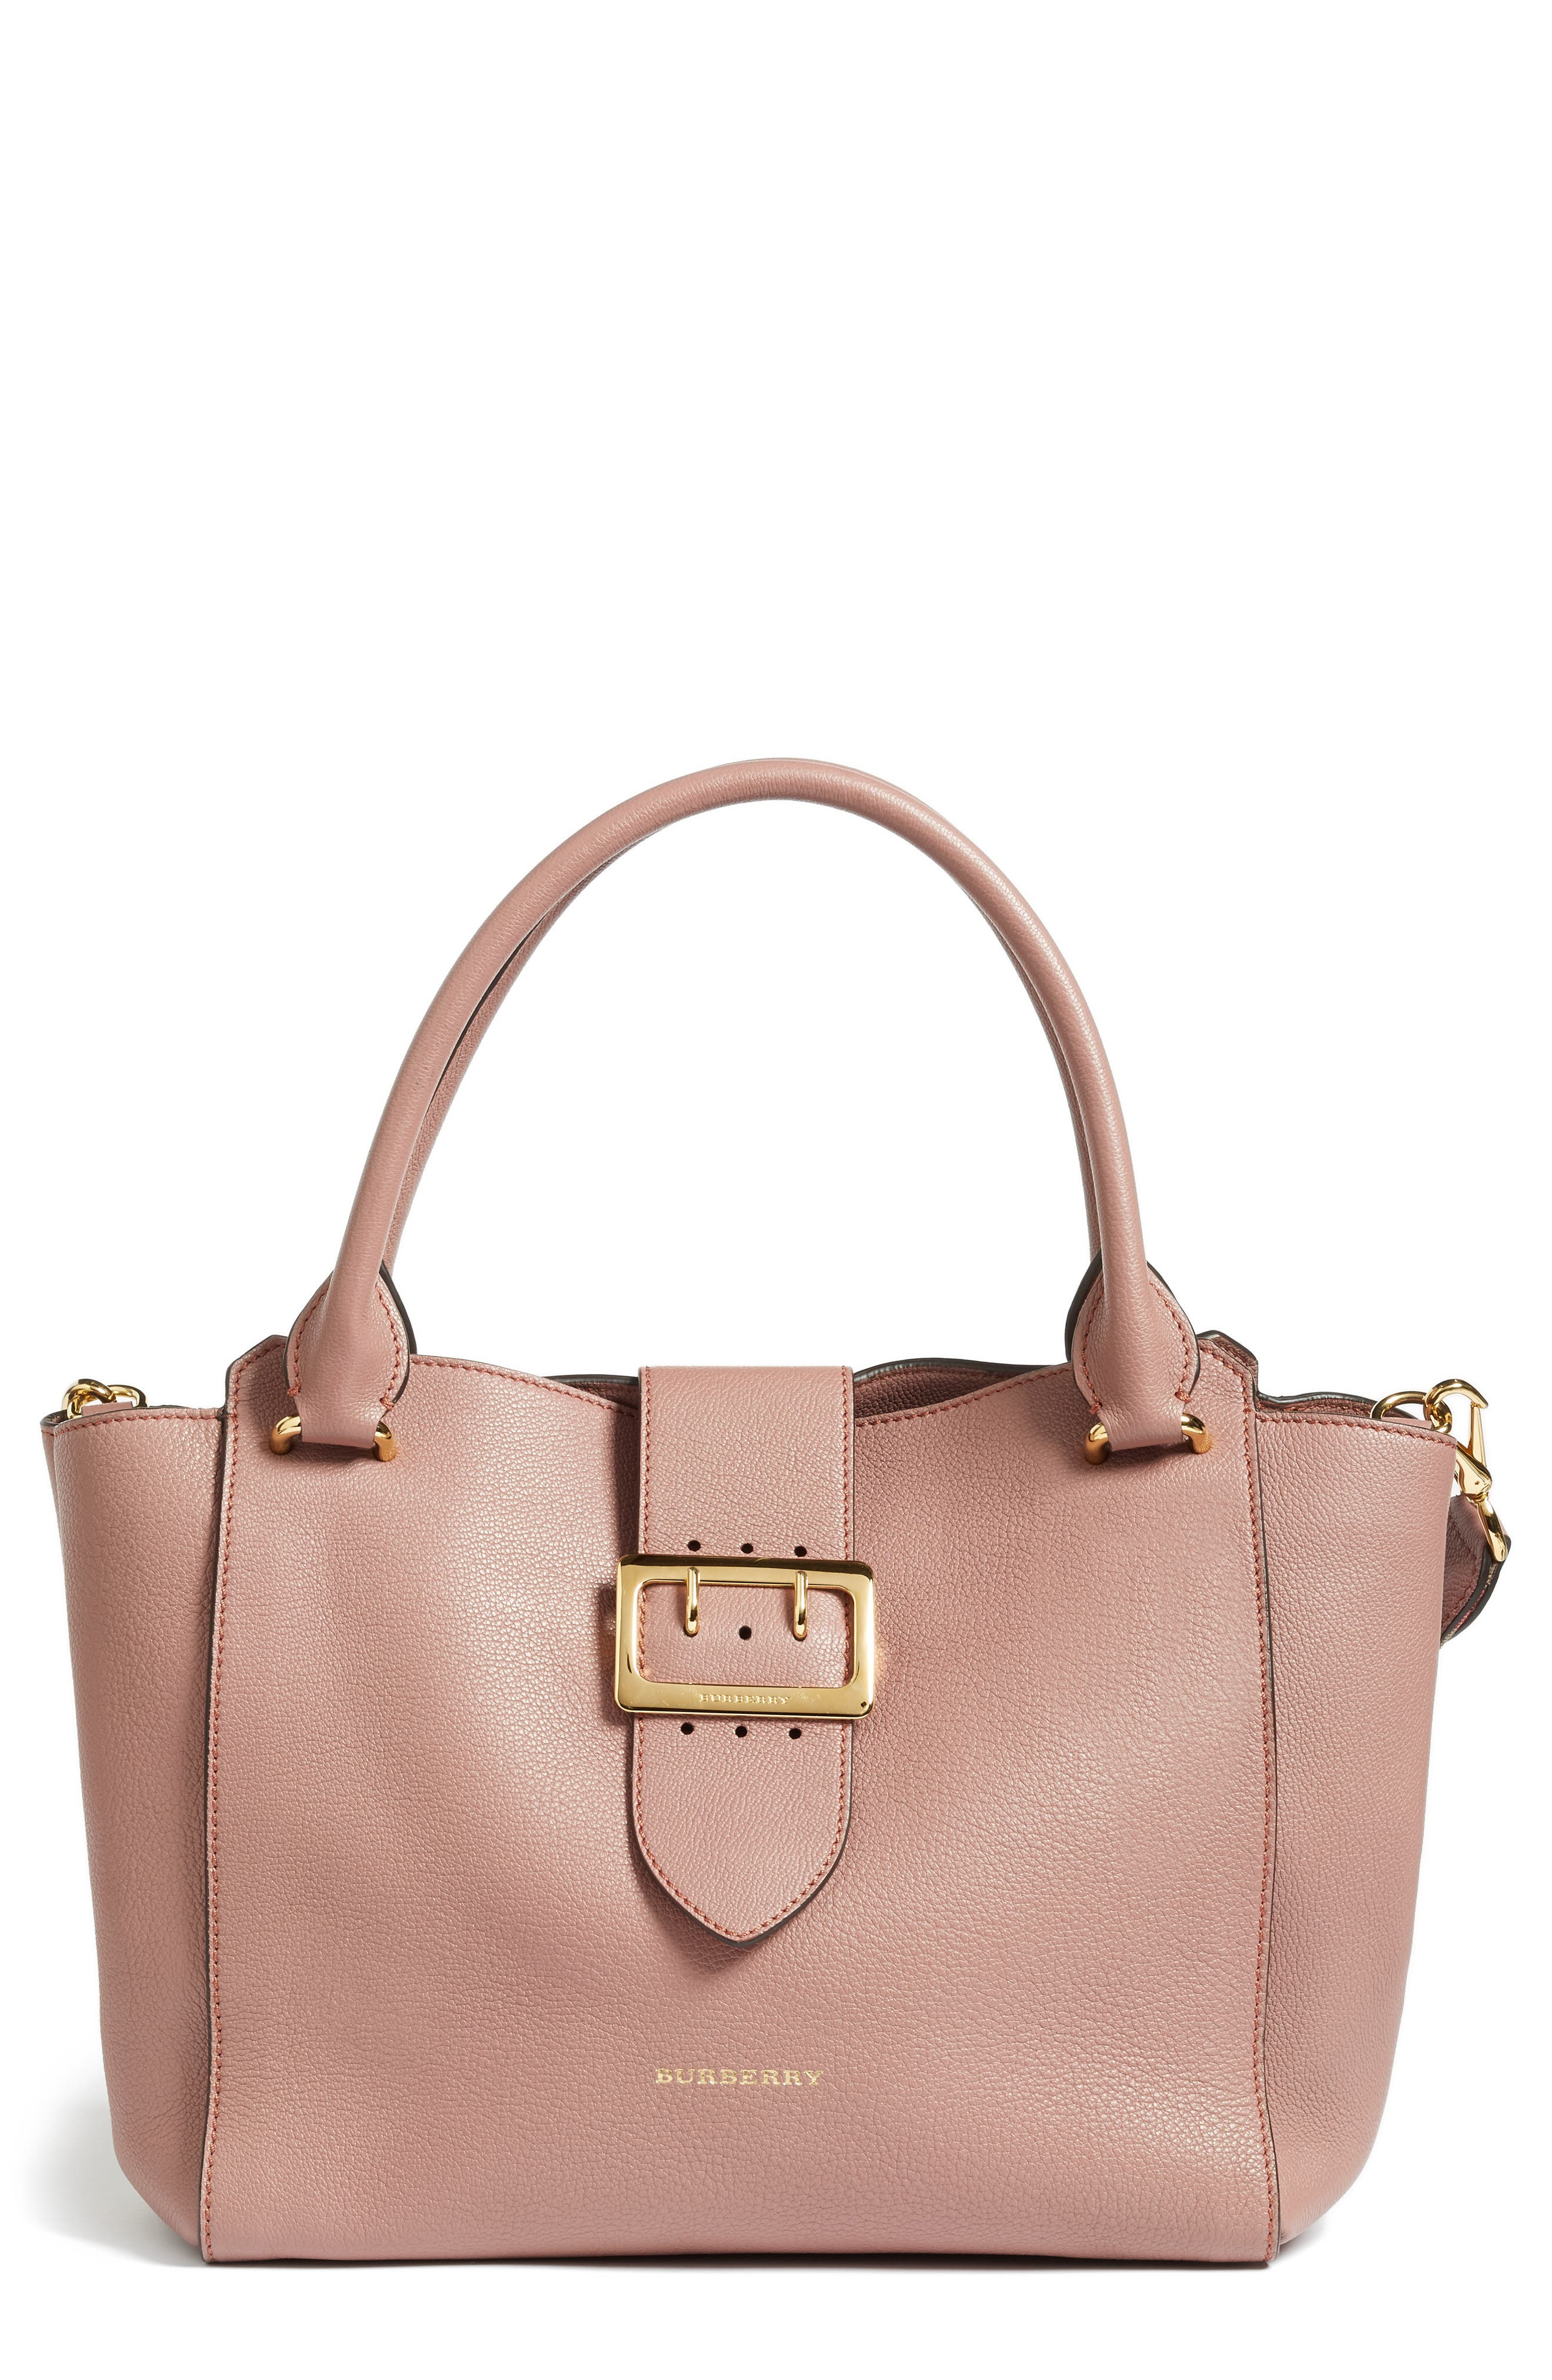 Main Image - Burberry Medium Buckle Tote